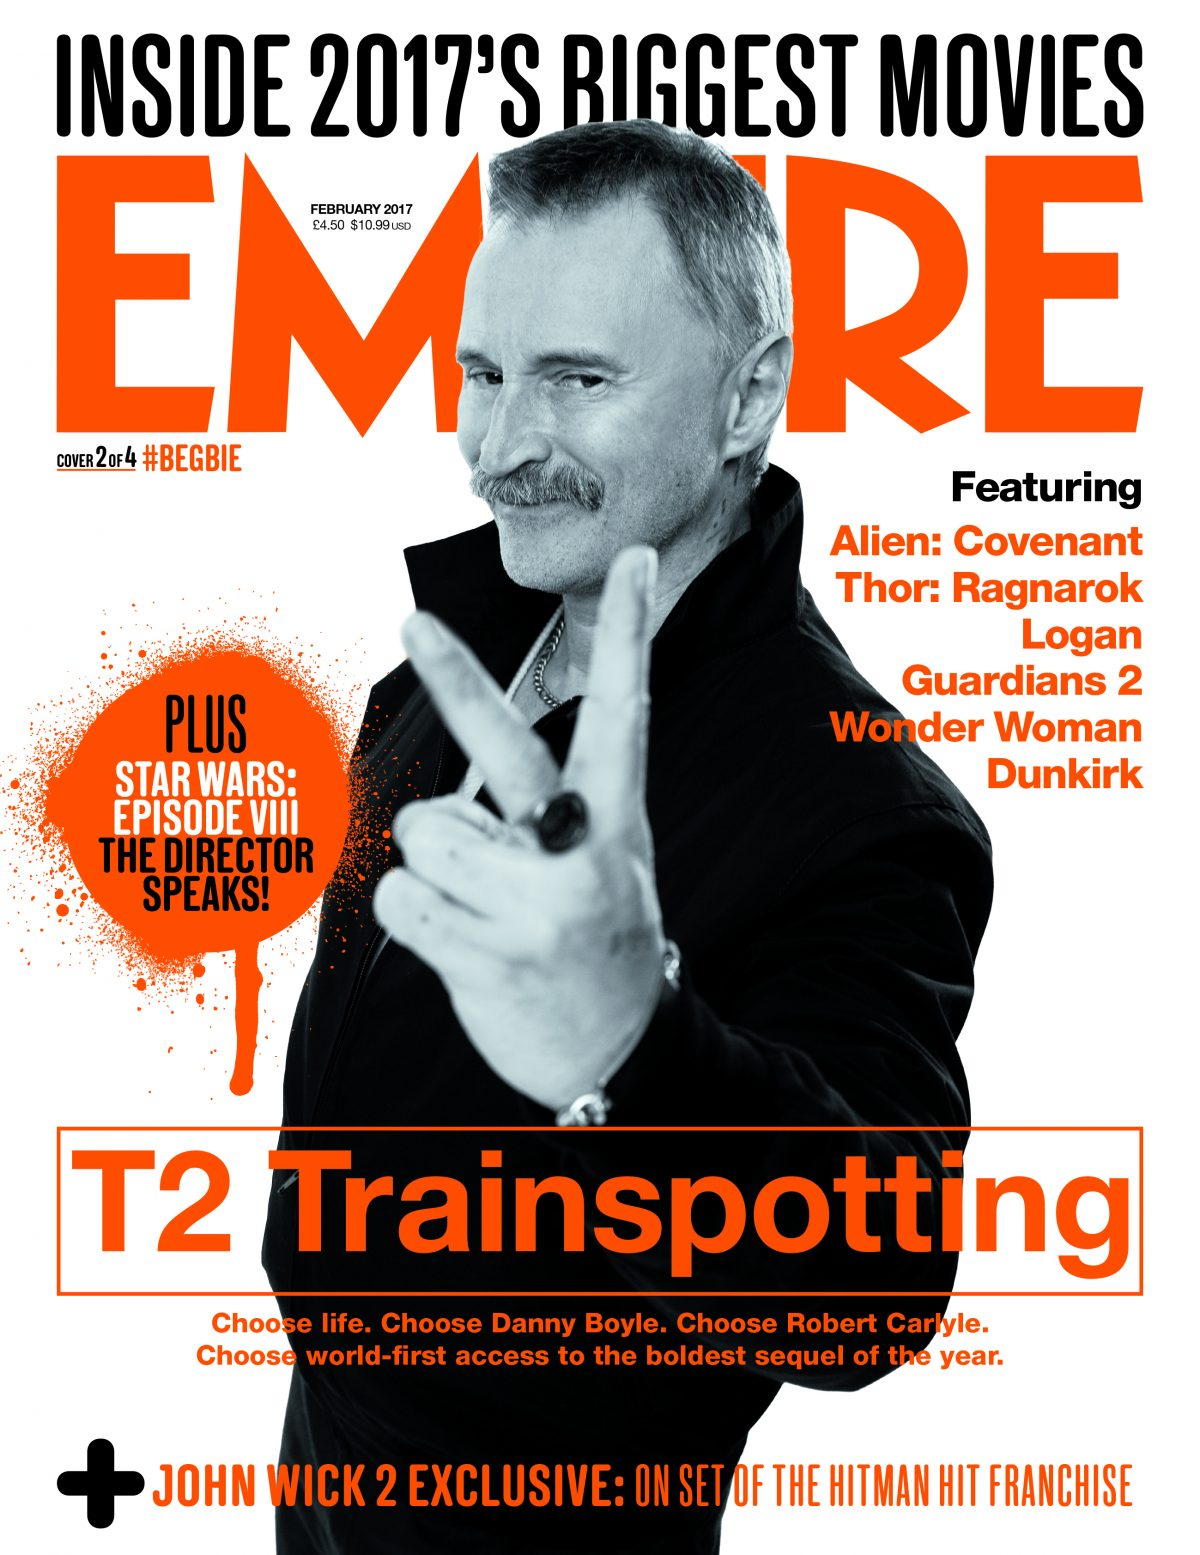 Much anticipated sequel T2 Trainspotting revealed